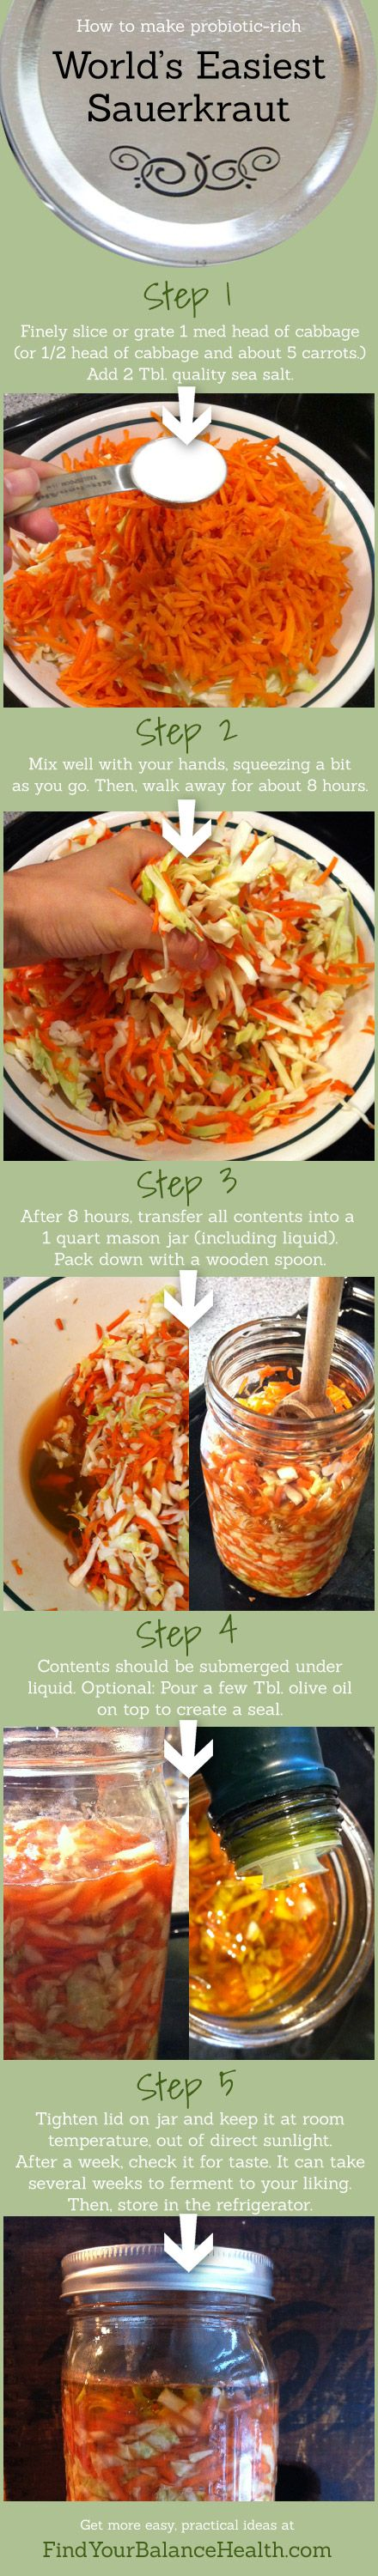 World's Easiest Sauerkraut Recipe. You can SO do this. | Find Your Balance with Michelle Pfennighaus